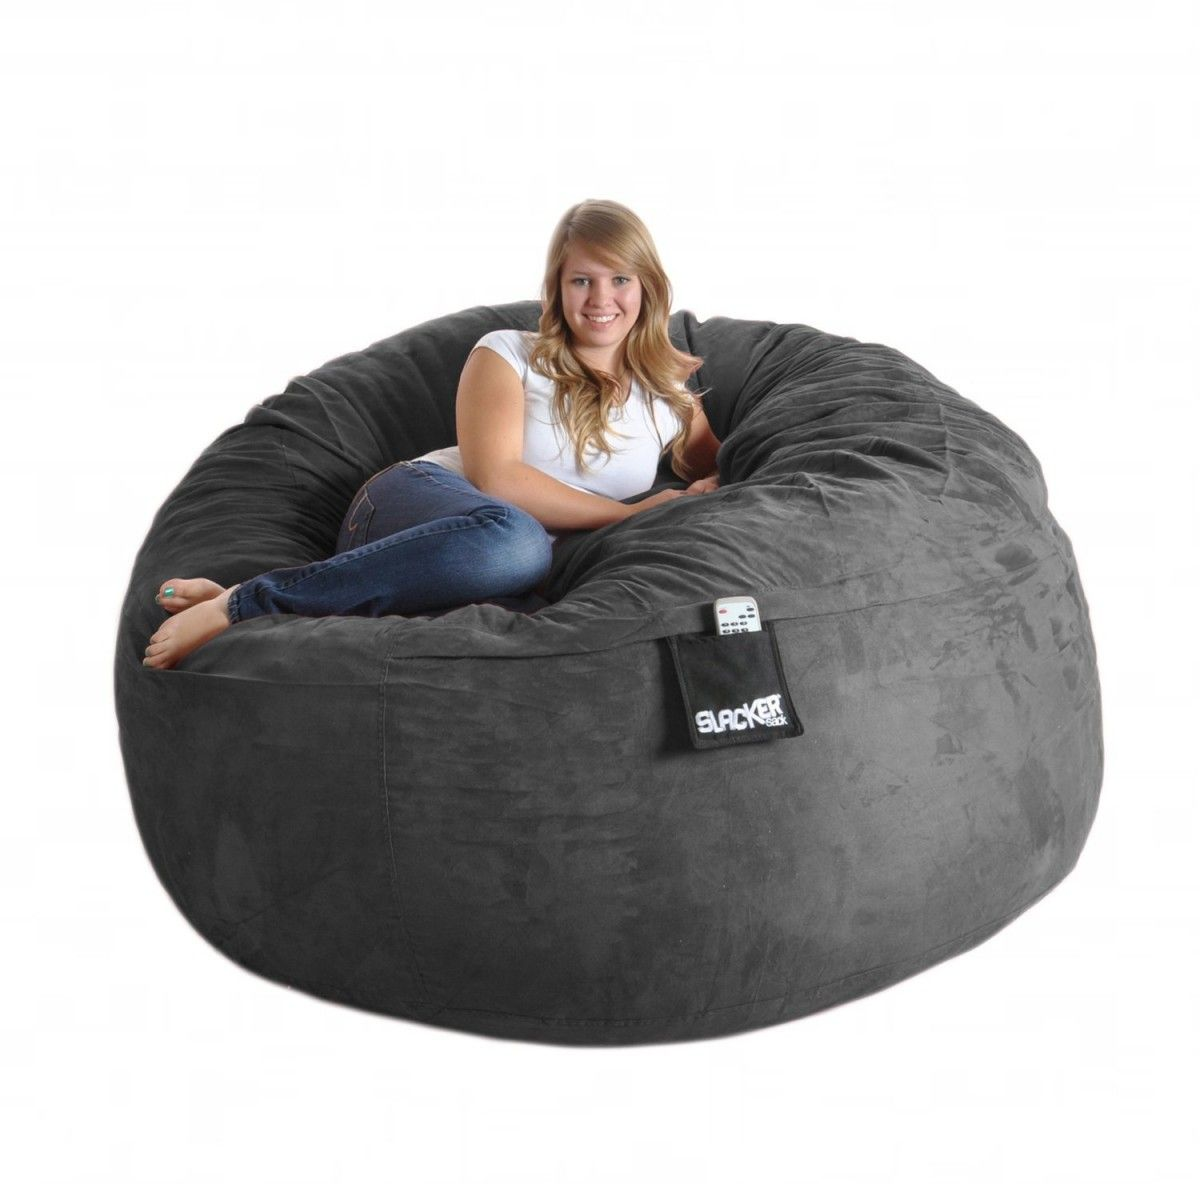 Slacker Sack Round Microsuede And Foam Bean Bag Charcoal Grey Cotton Find This Pin More On Chairs For Adults